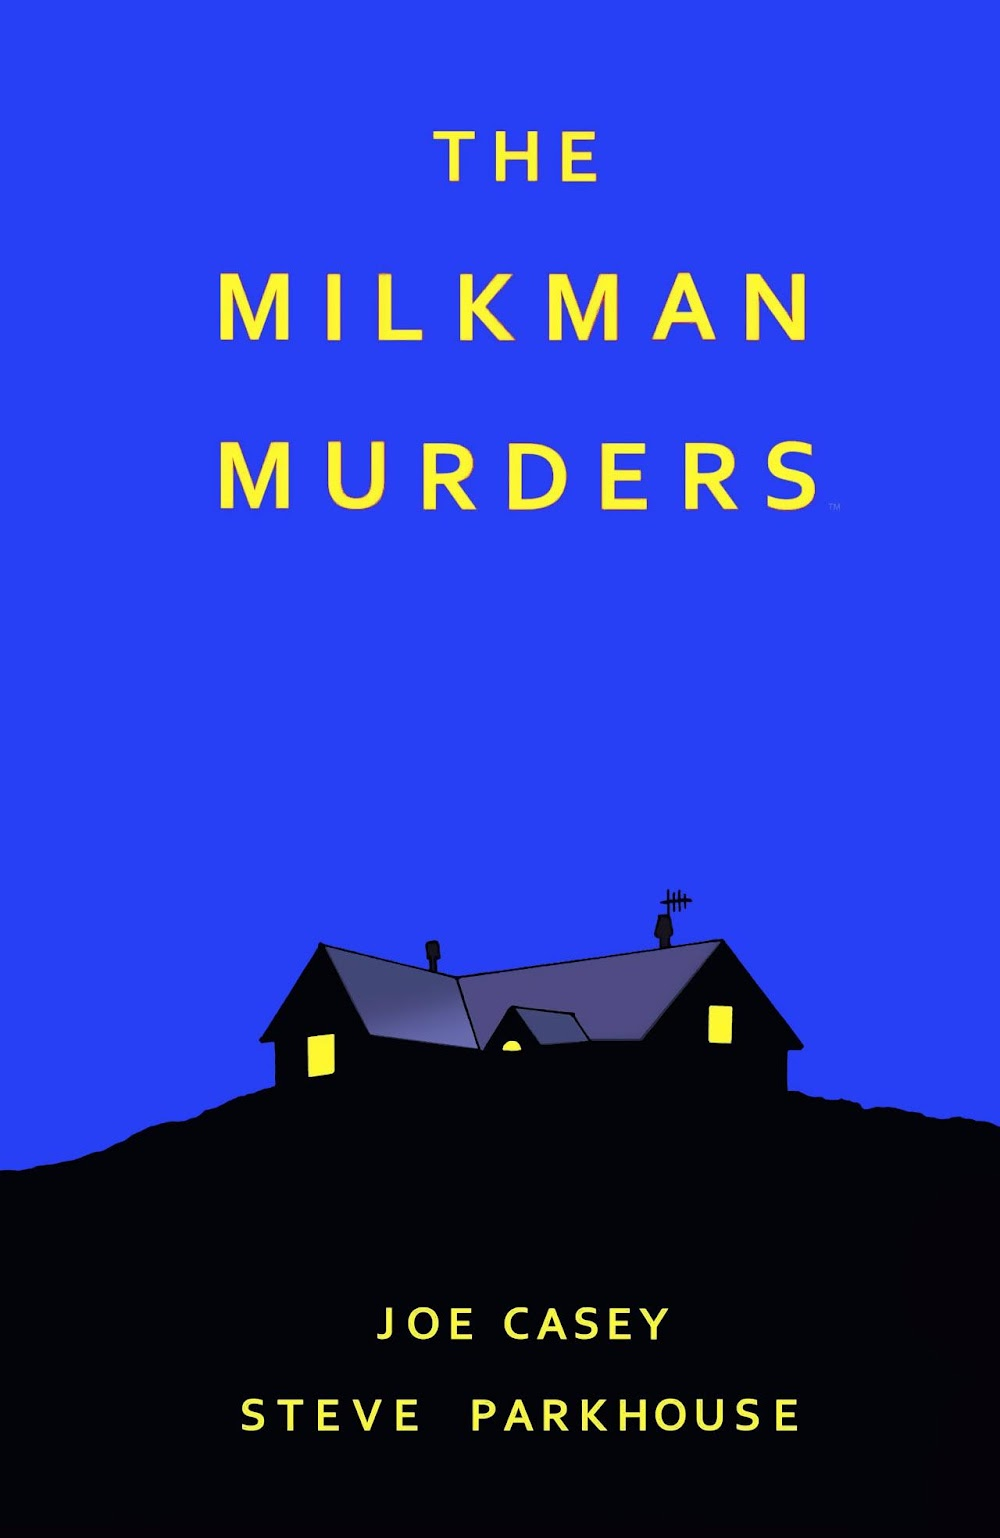 The Milkman Murders (2012)